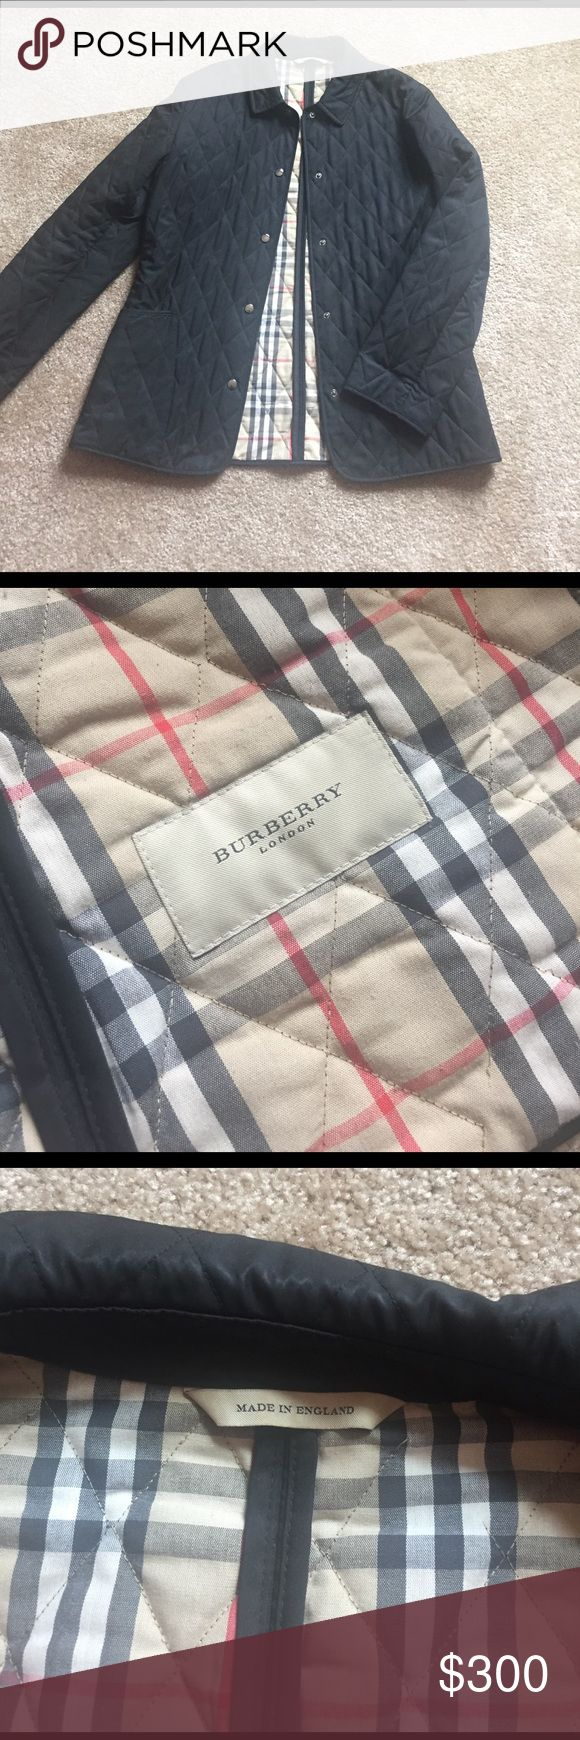 Burberry quilted jacket Burberry London quilted jacket. Very gently used condition. I am the second owner and it was never used by me. Burberry Jackets & Coats